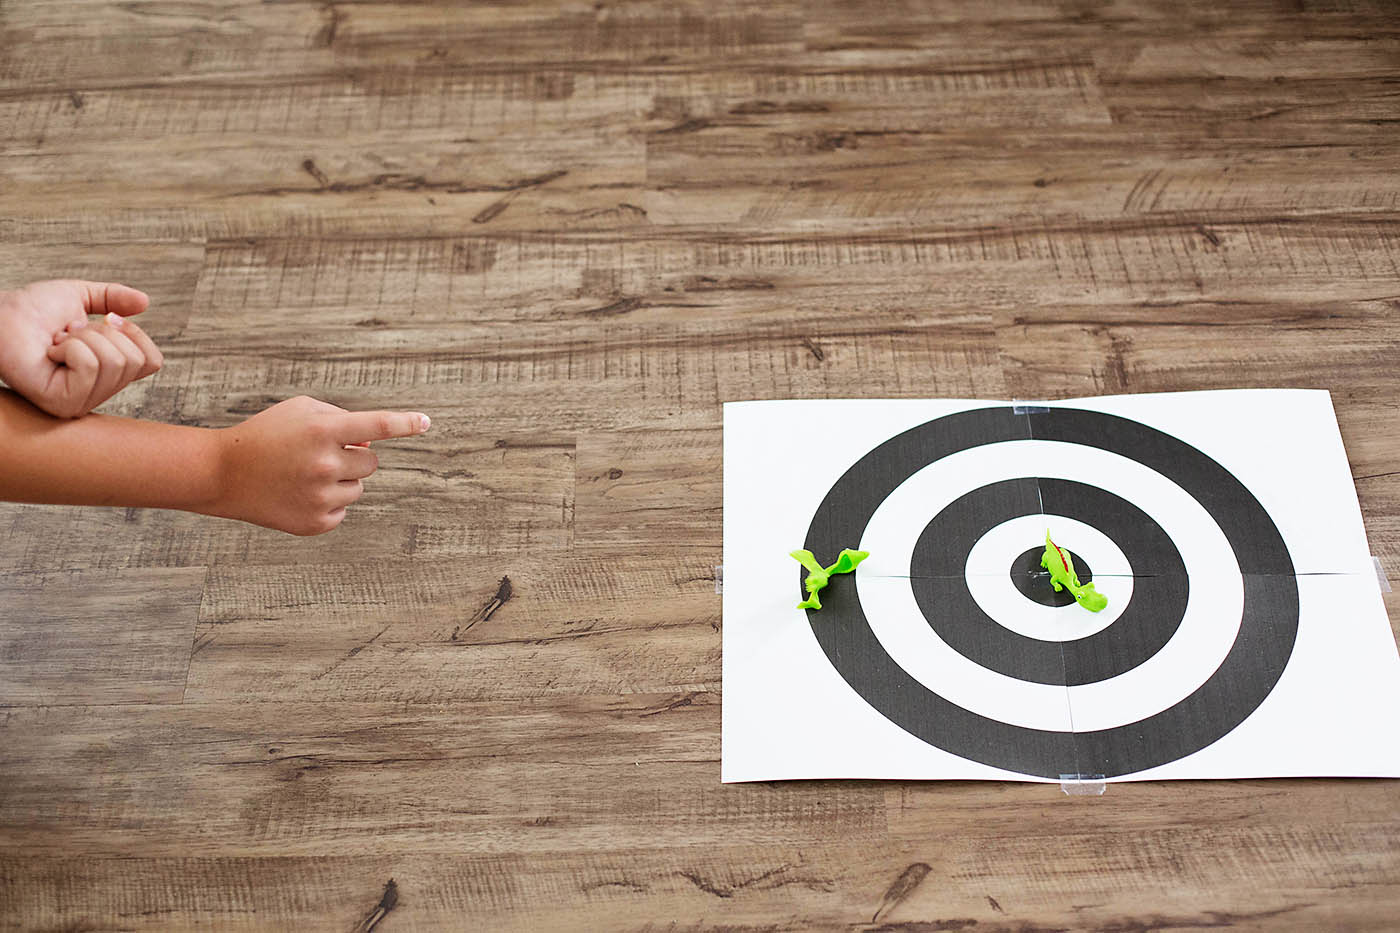 aftb-easy-toy-target-game-7